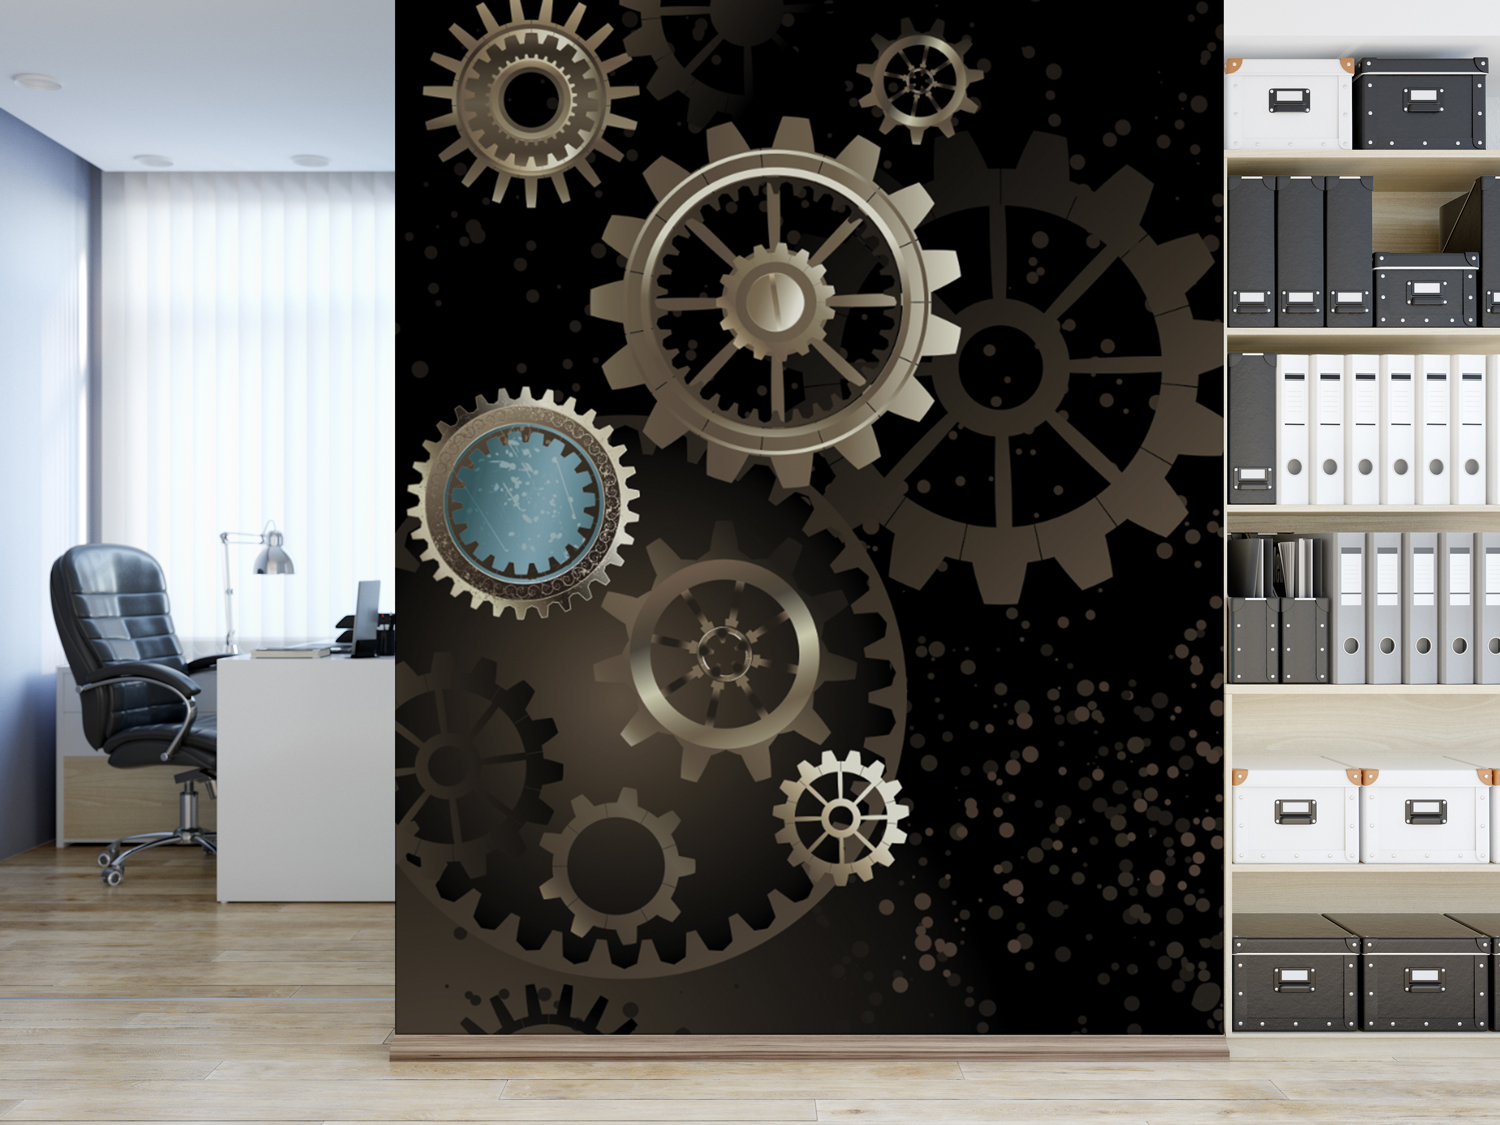 Commercial Office Space Digital Printed Vinyl Decorative Wallpaper Mockup 1 by Digital Marching FX DMFX Eric Sabach